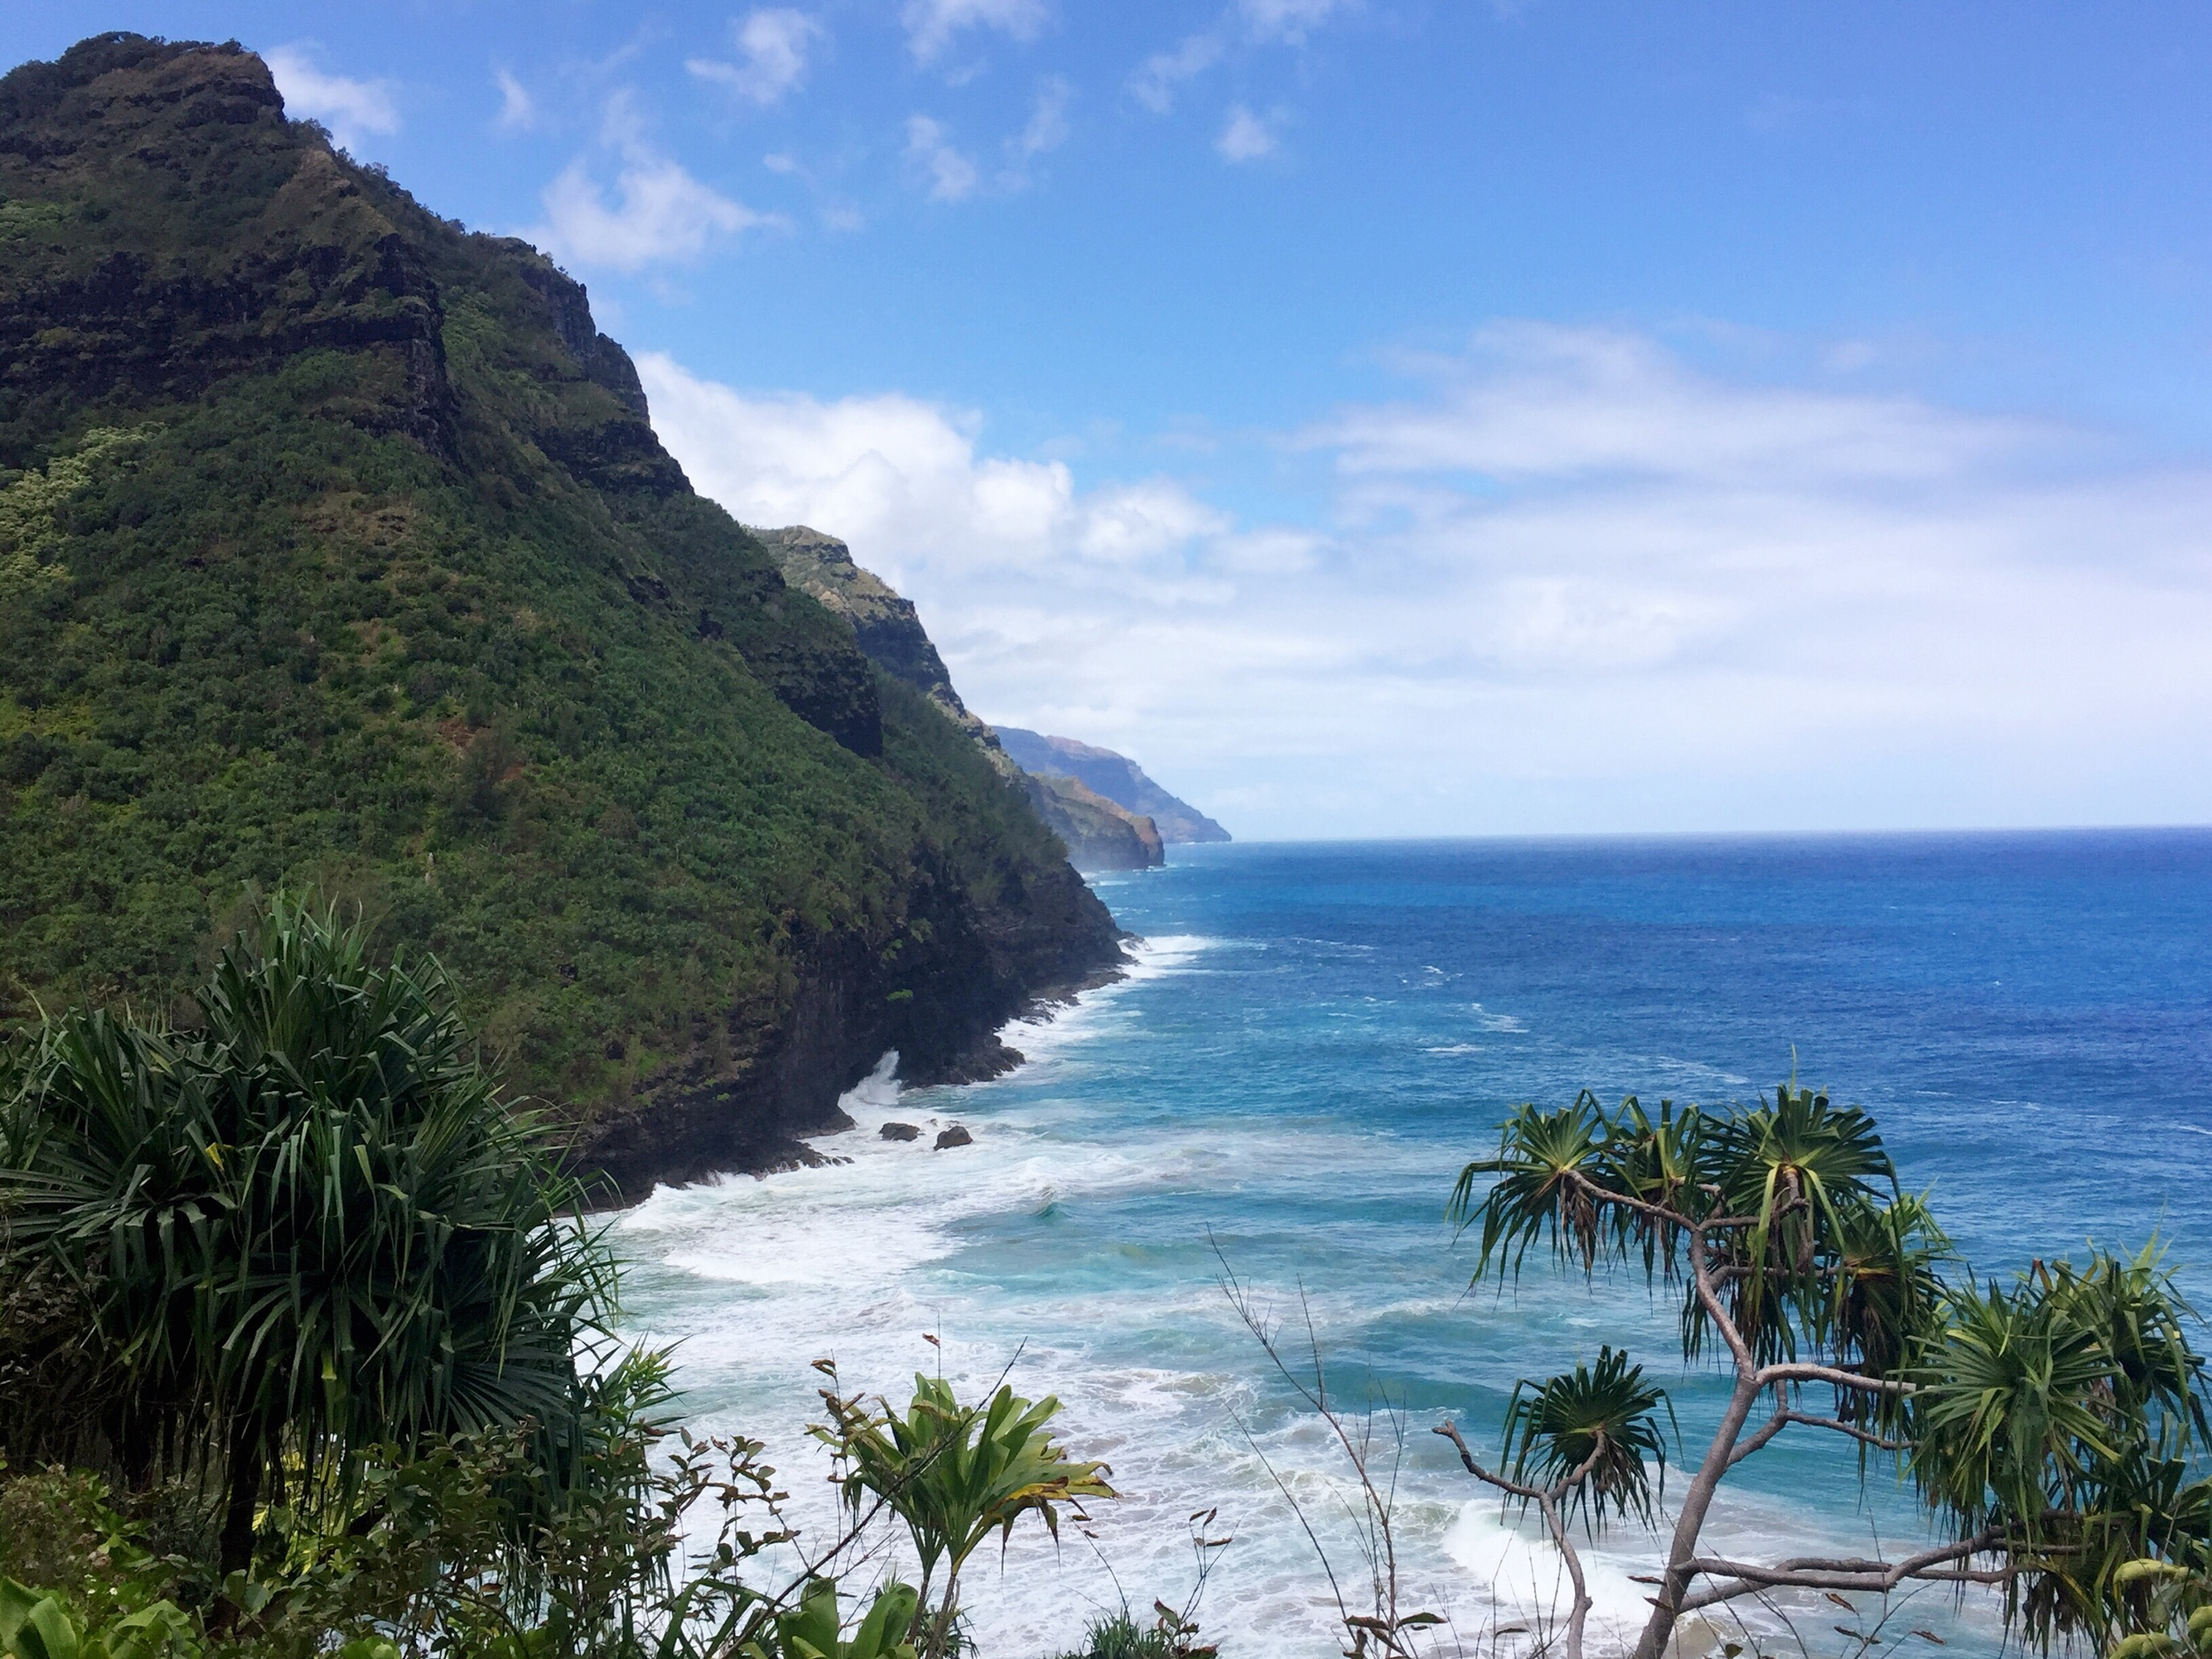 Kalalau trail on the Napali coast